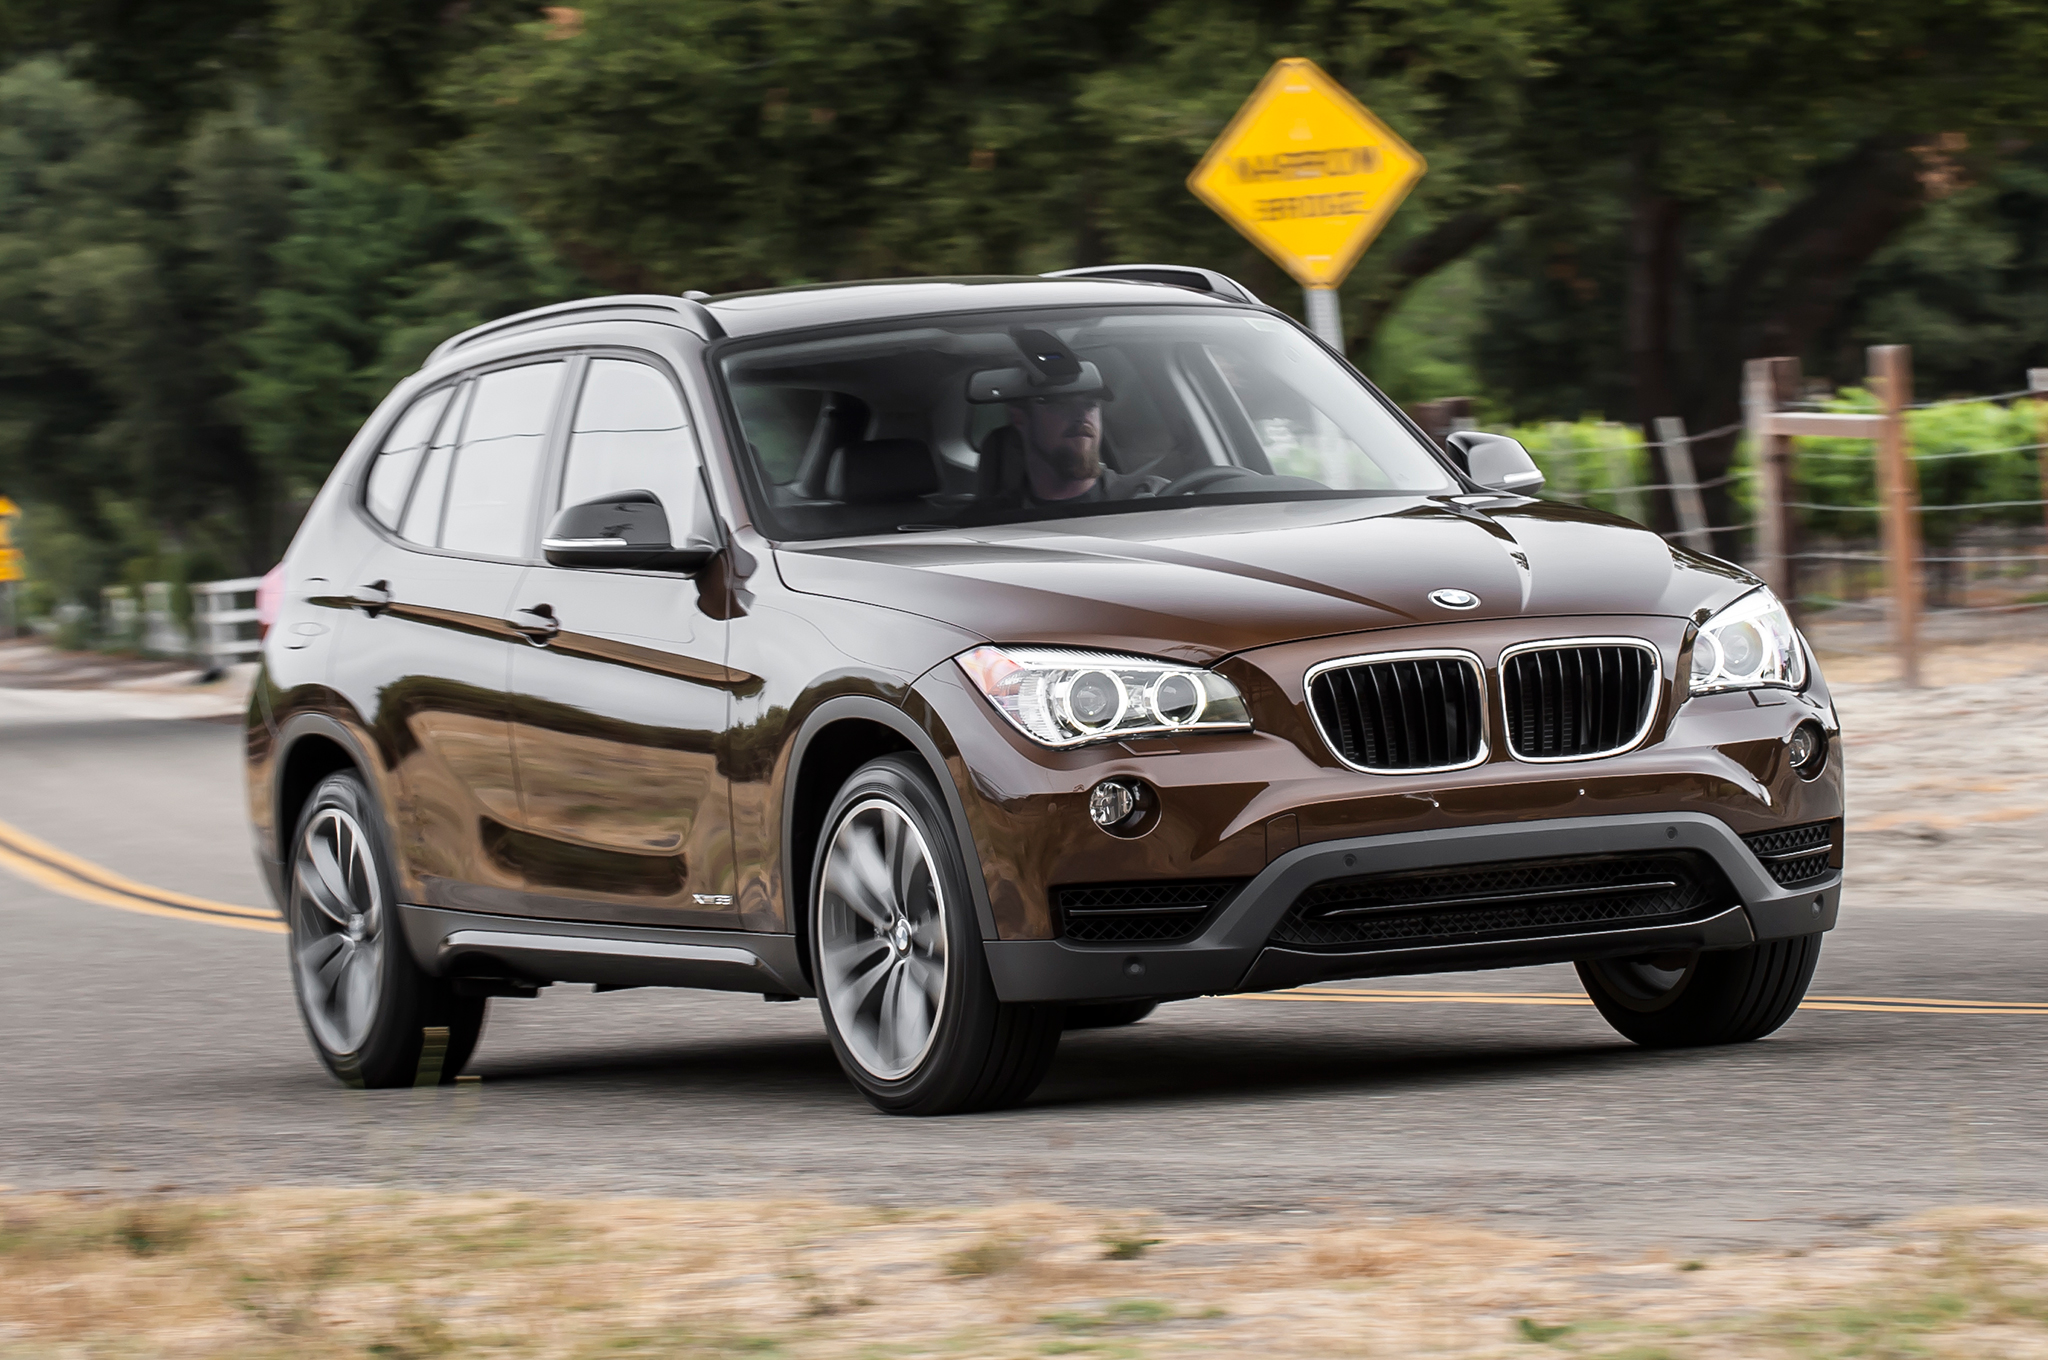 2014 bmw x1 information and photos zombiedrive. Black Bedroom Furniture Sets. Home Design Ideas